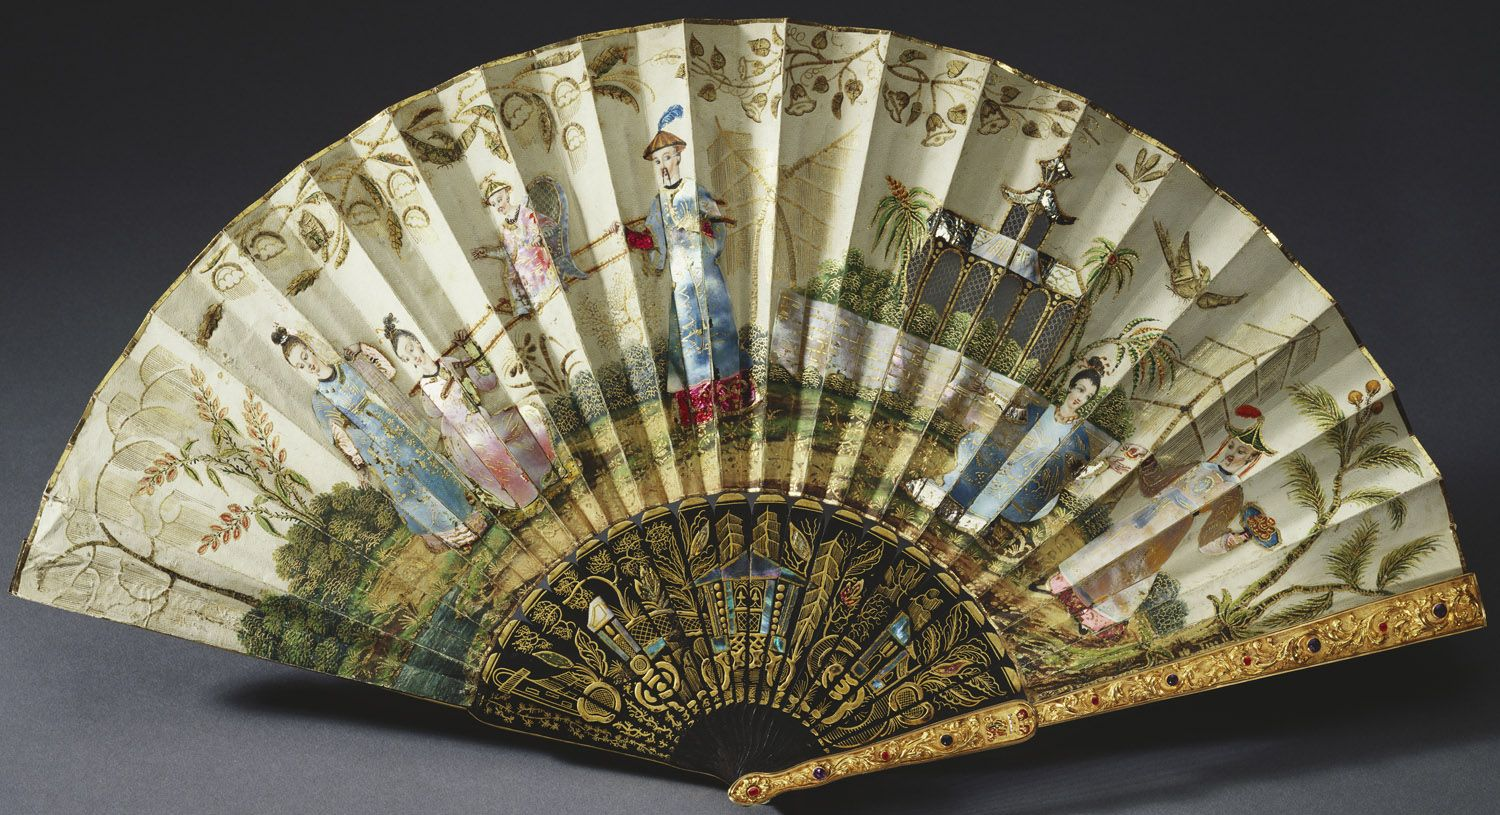 French, Queen Adelaide's fan, c. 1820